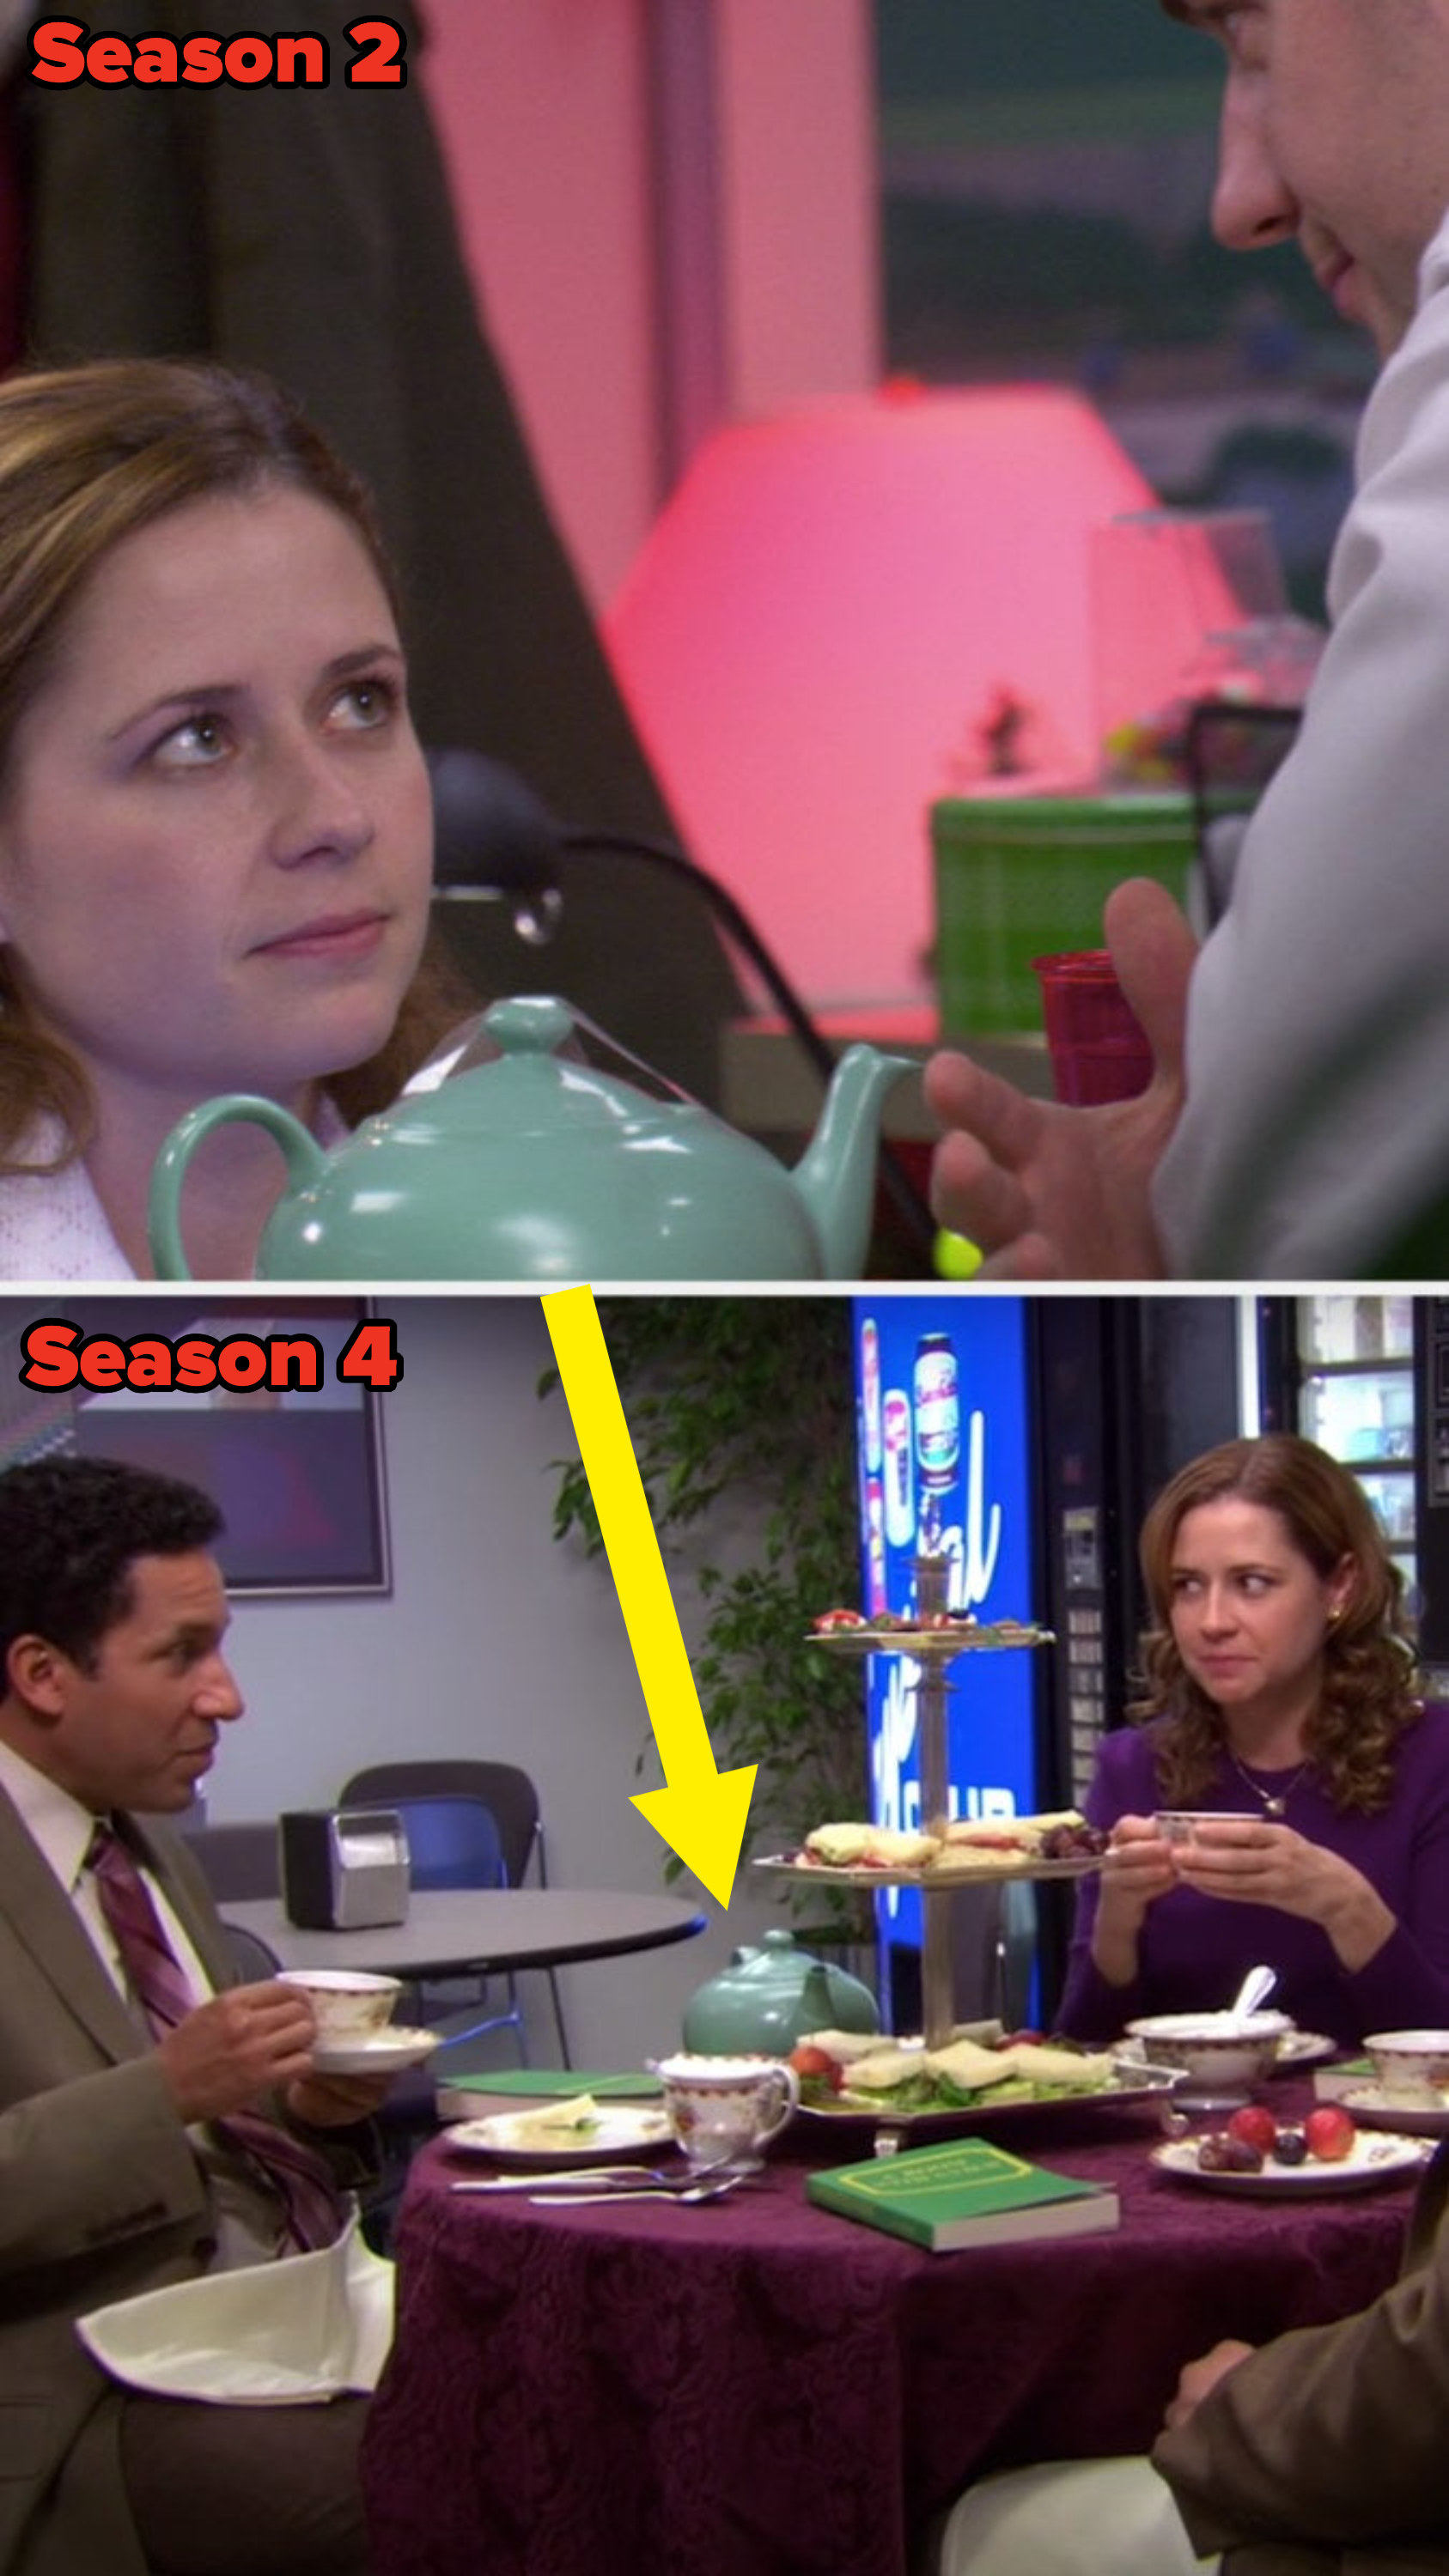 The teapot highlighted in different scenes